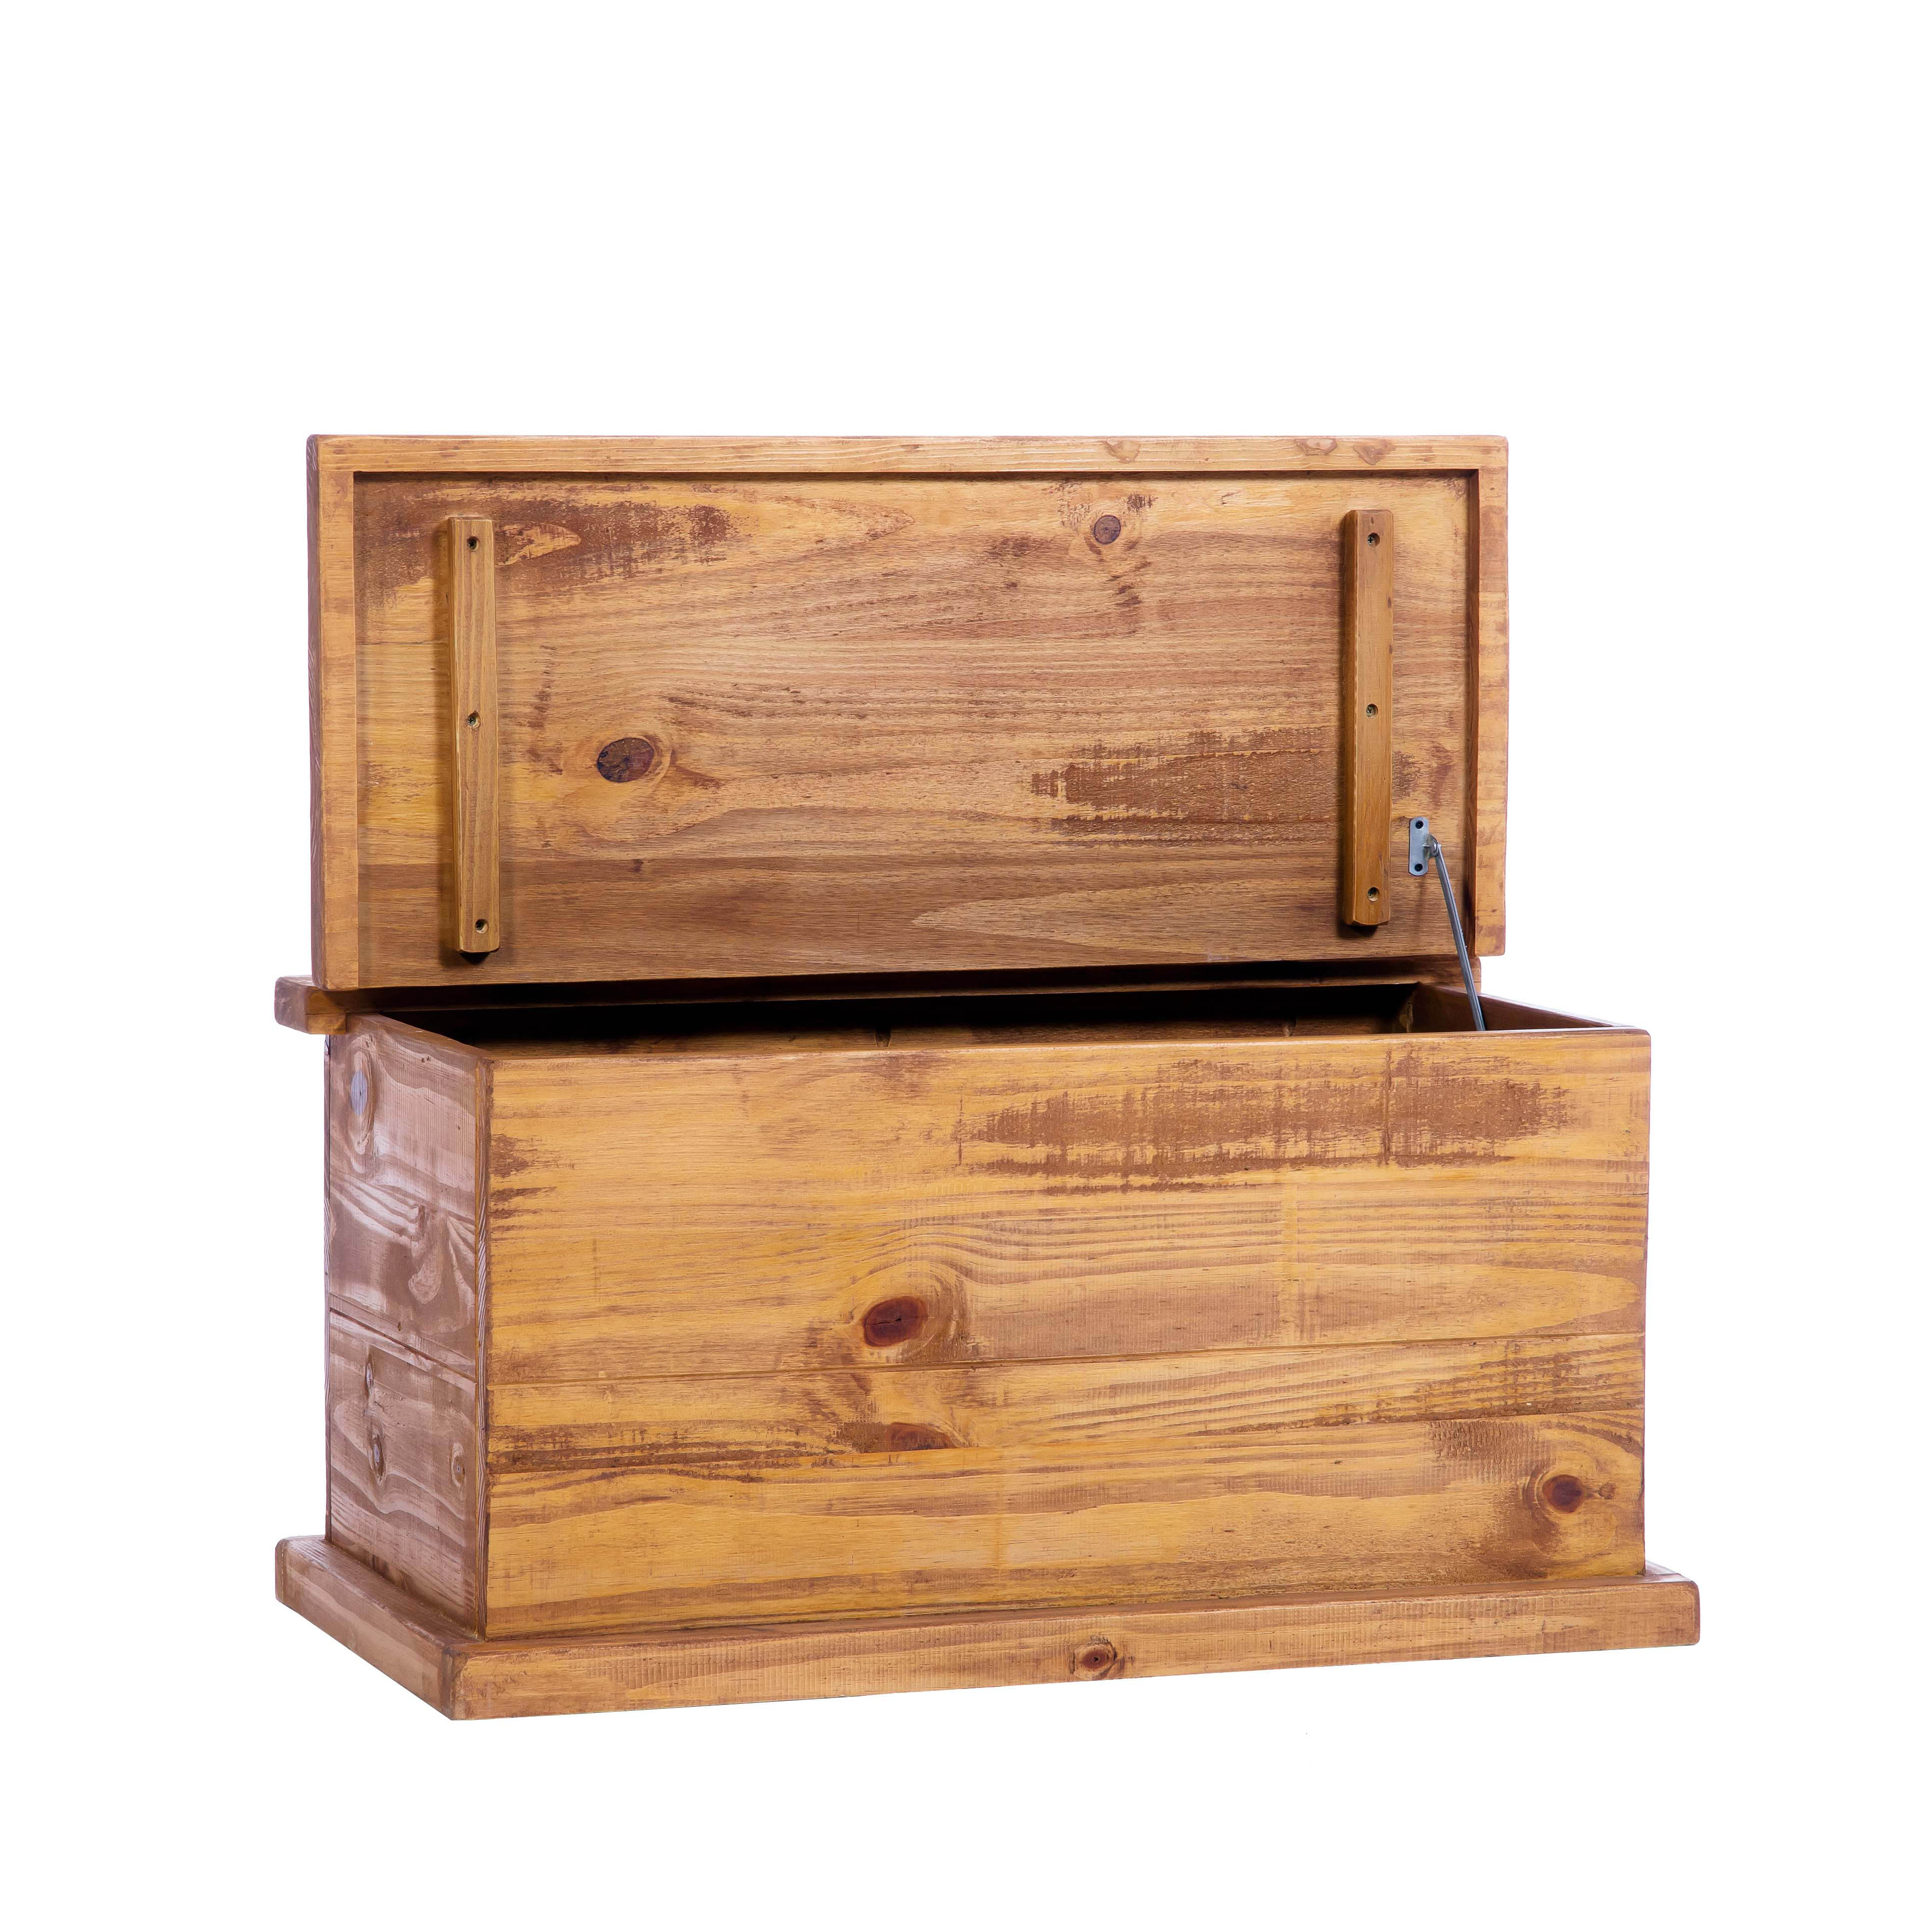 Farmhouse Storage Trunk